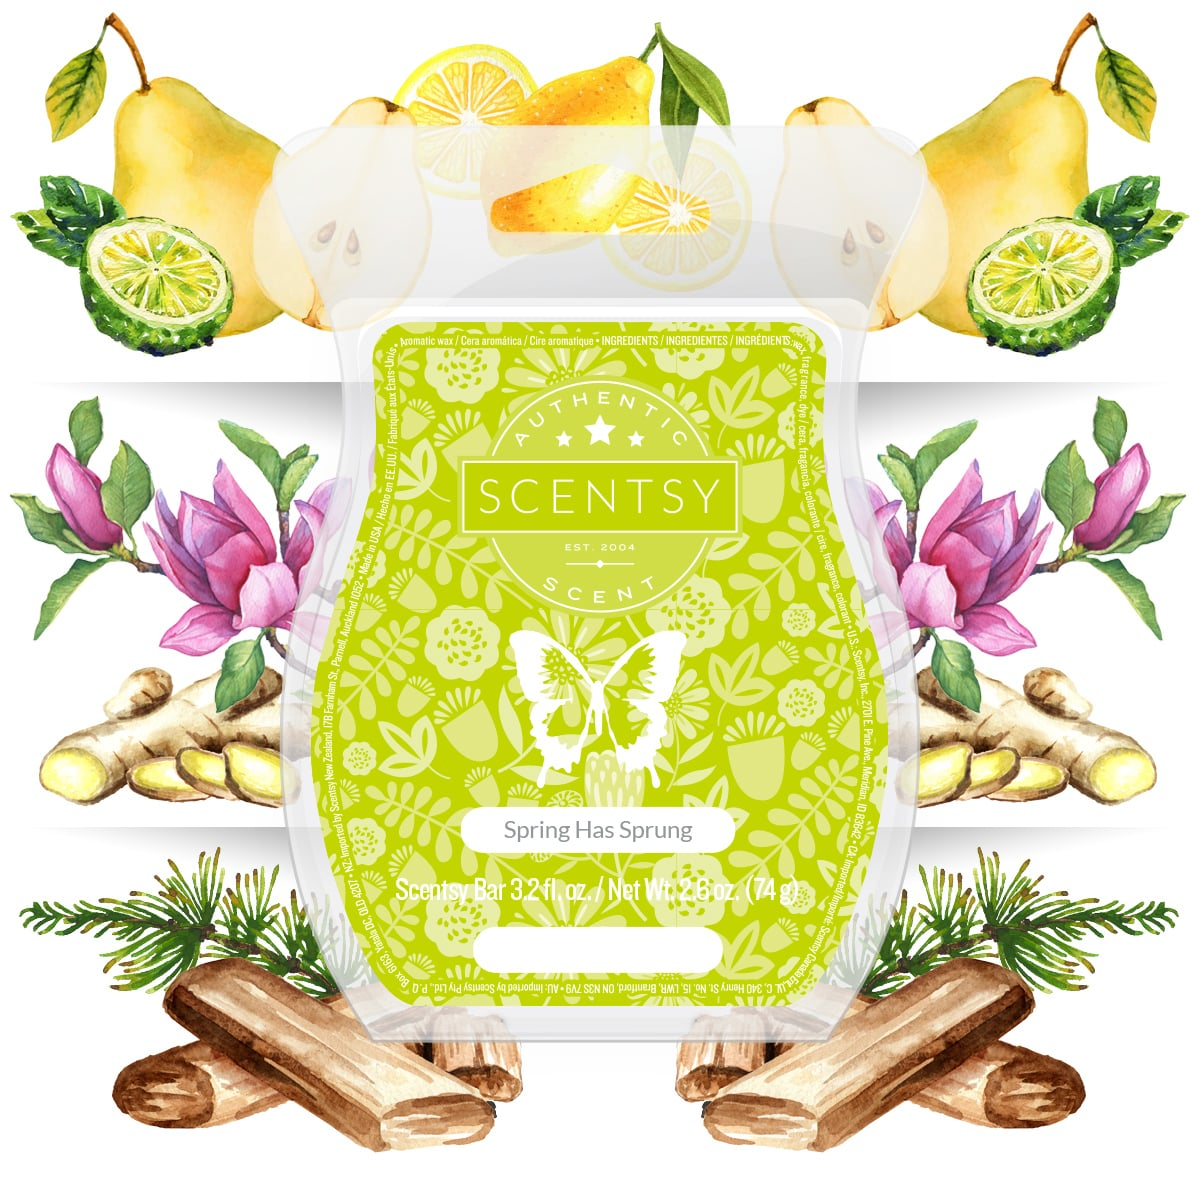 SPRING HAS SPRUNG SCENTSY FRAGRANCE